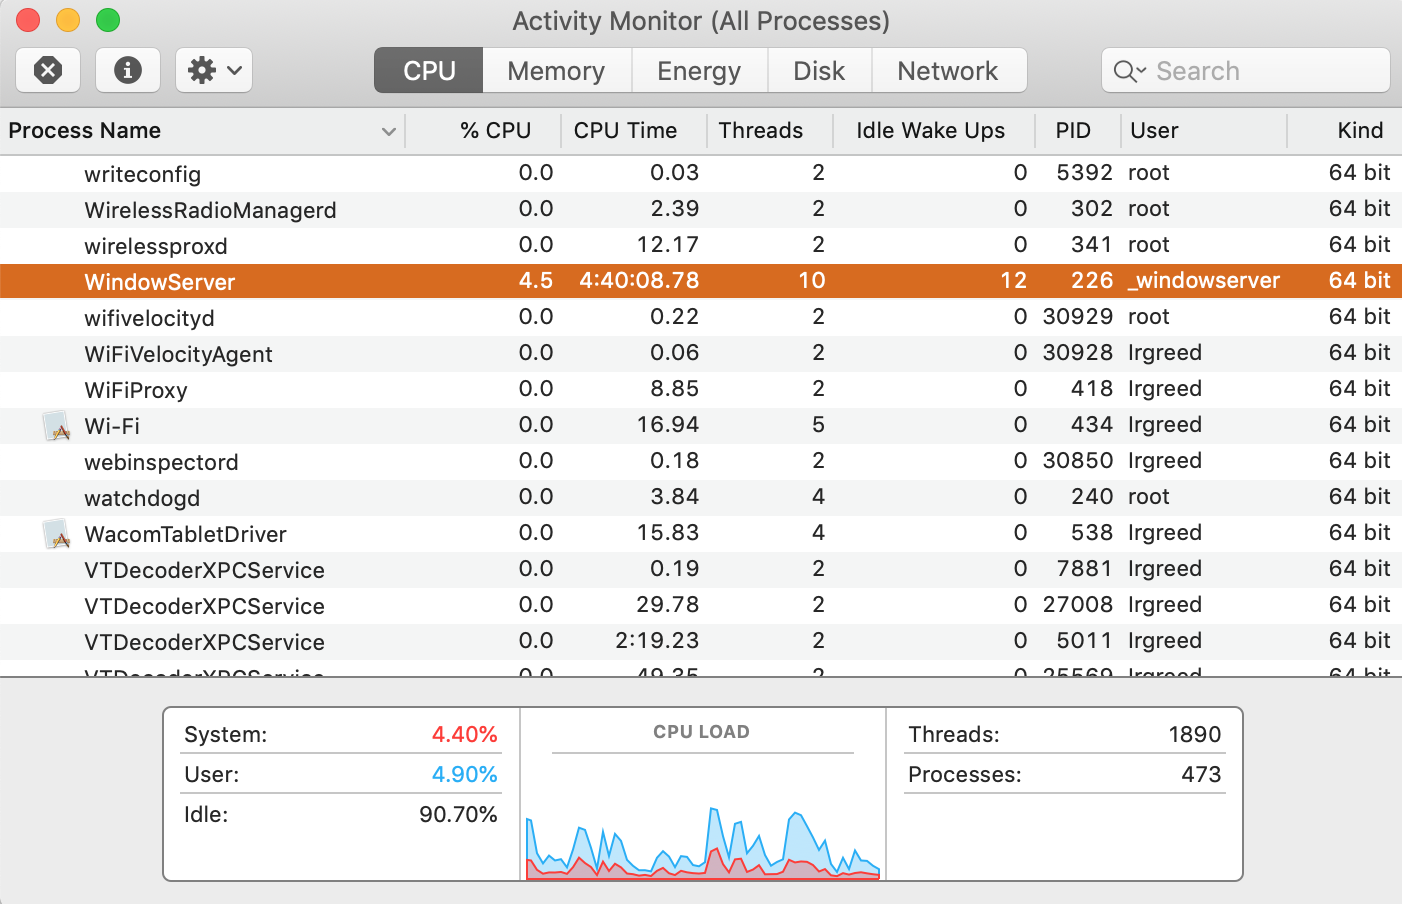 activity monitor window open in the CPU pane